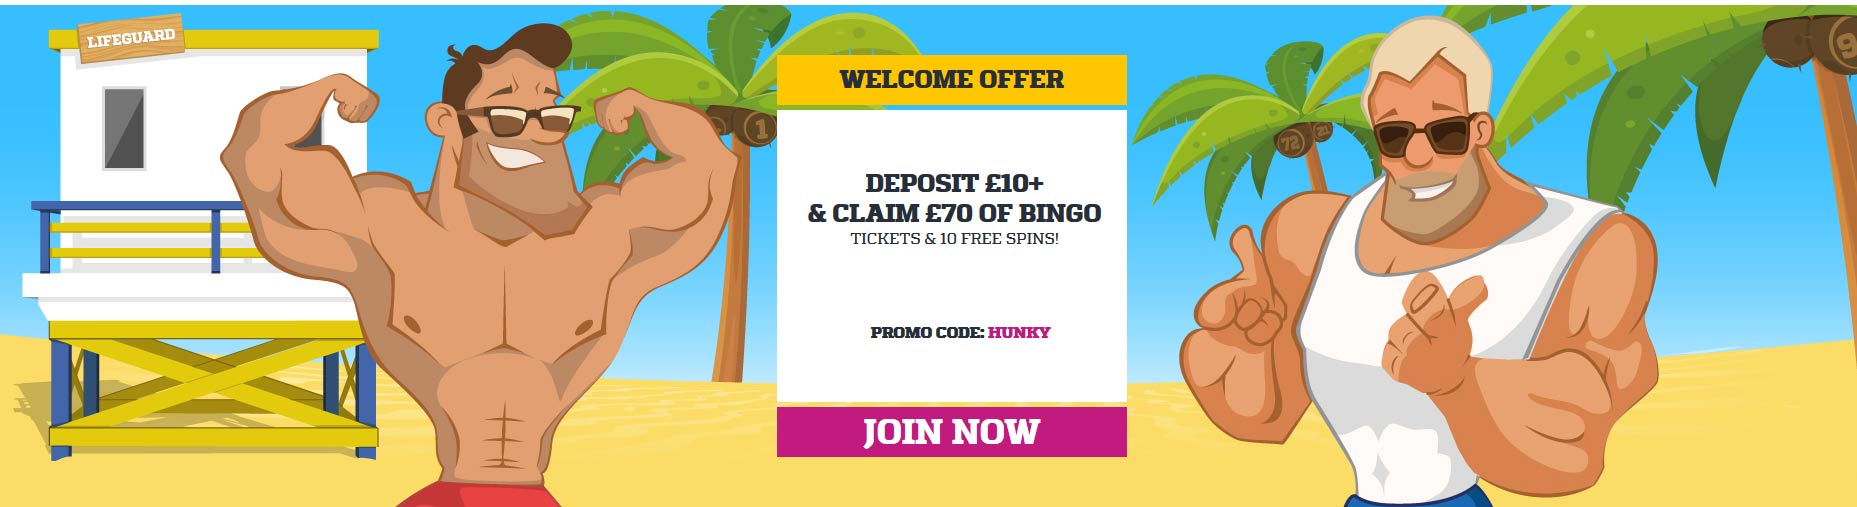 Hunky Bingo Welcome Offer